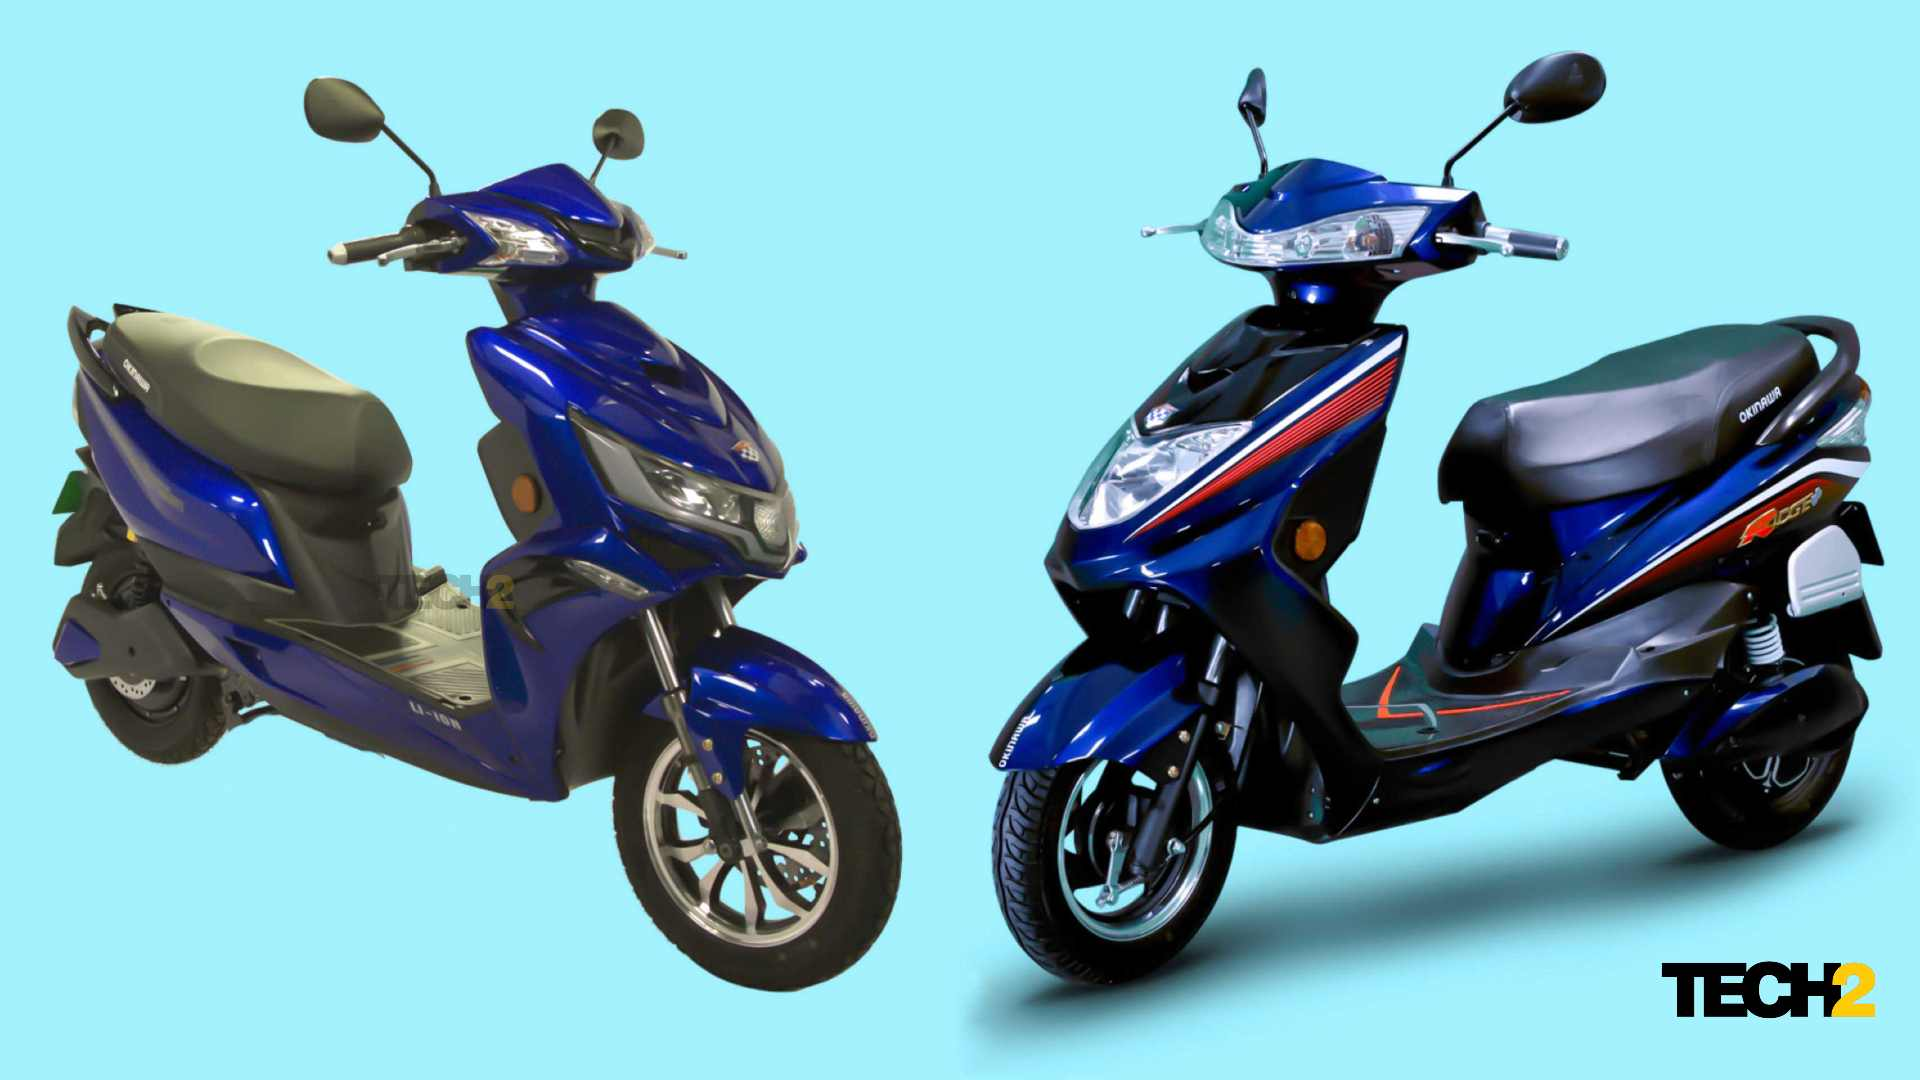 The Okinawa high-speed range will start at under Rs 40,000 in Maharashtra till the end of 2021. Image: Tech2